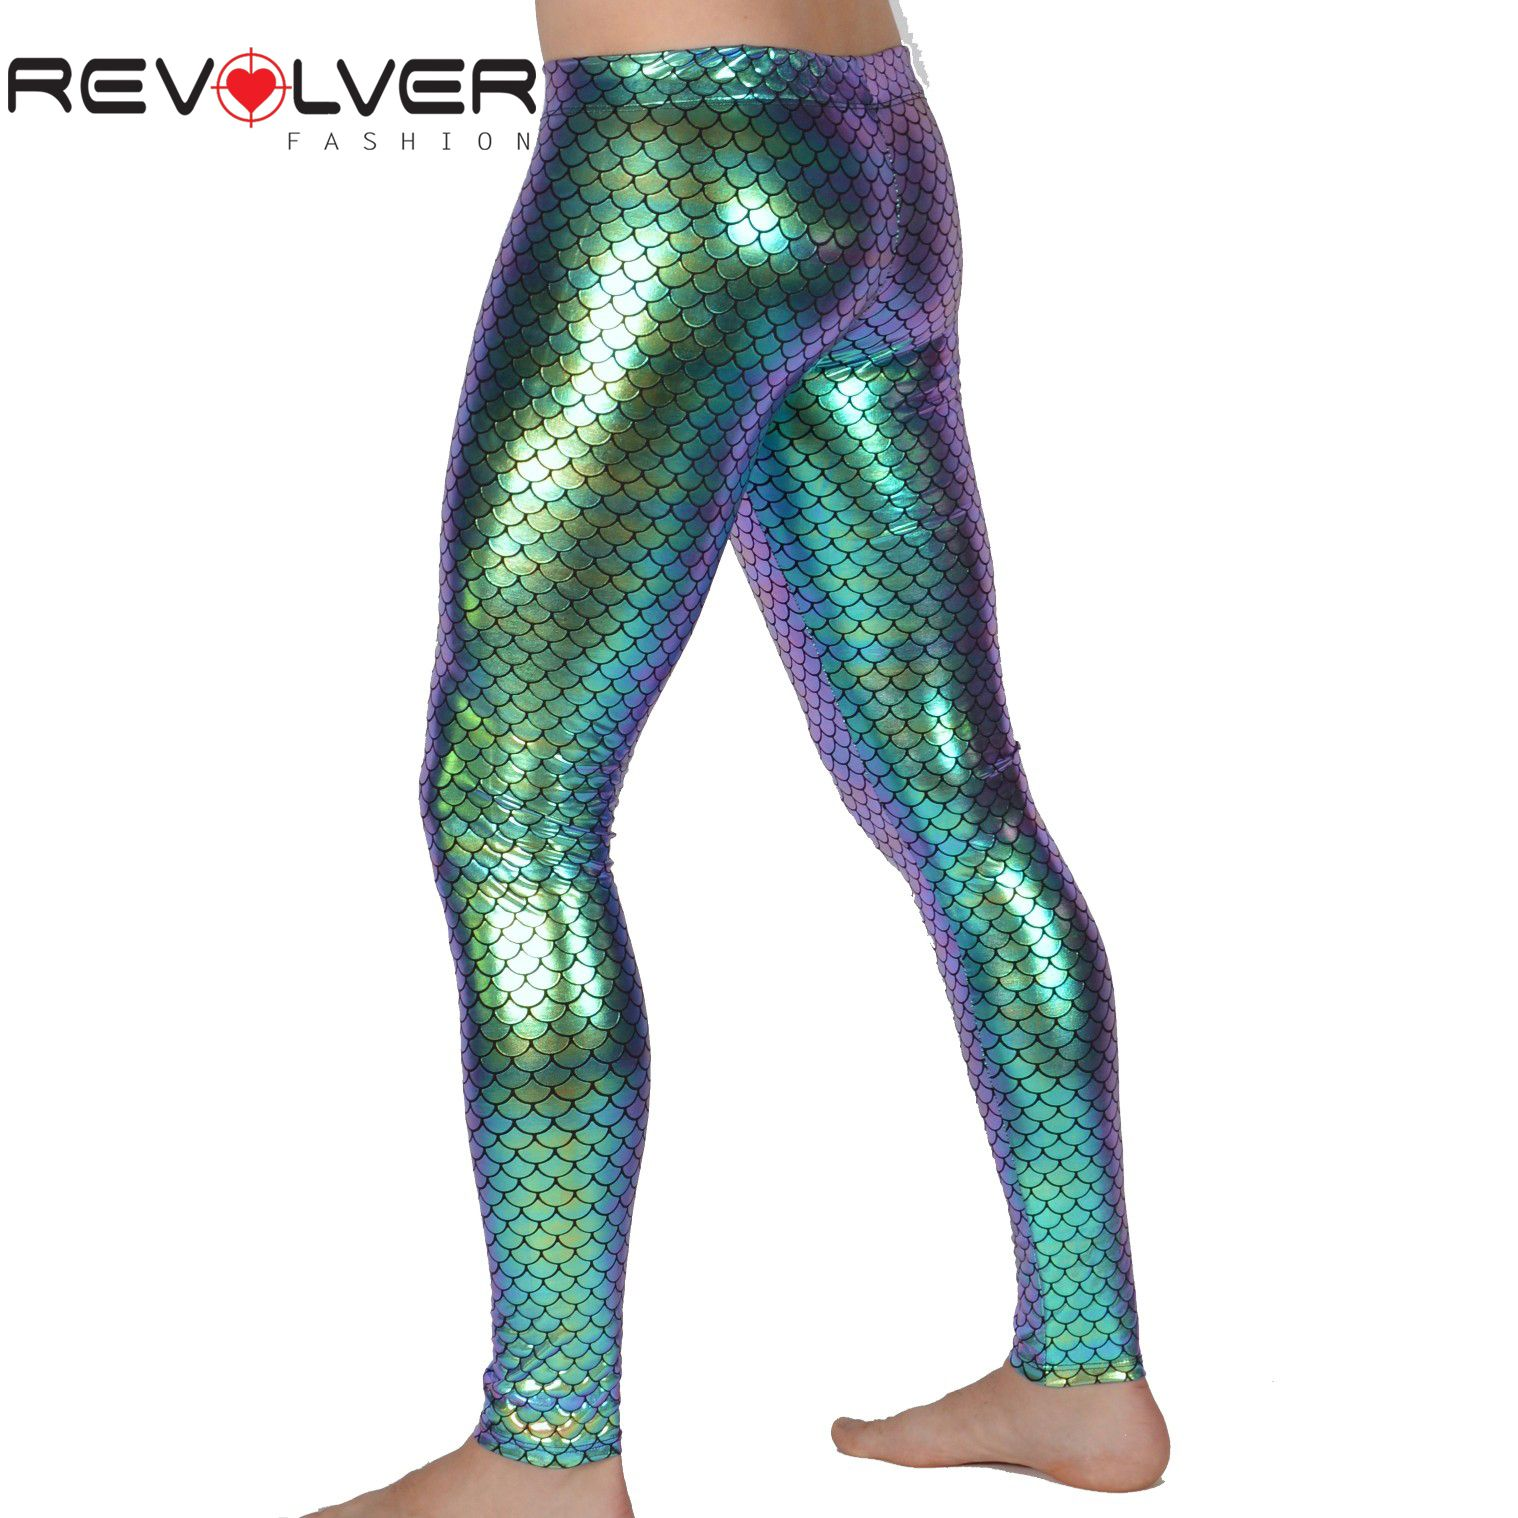 8c8a0fb85e Green Holograph Merman Leggings. #holographic #meggings #mensleggings  #burningman #musicfestival #mermen #mermaid #fishprint #revolverfashion ...